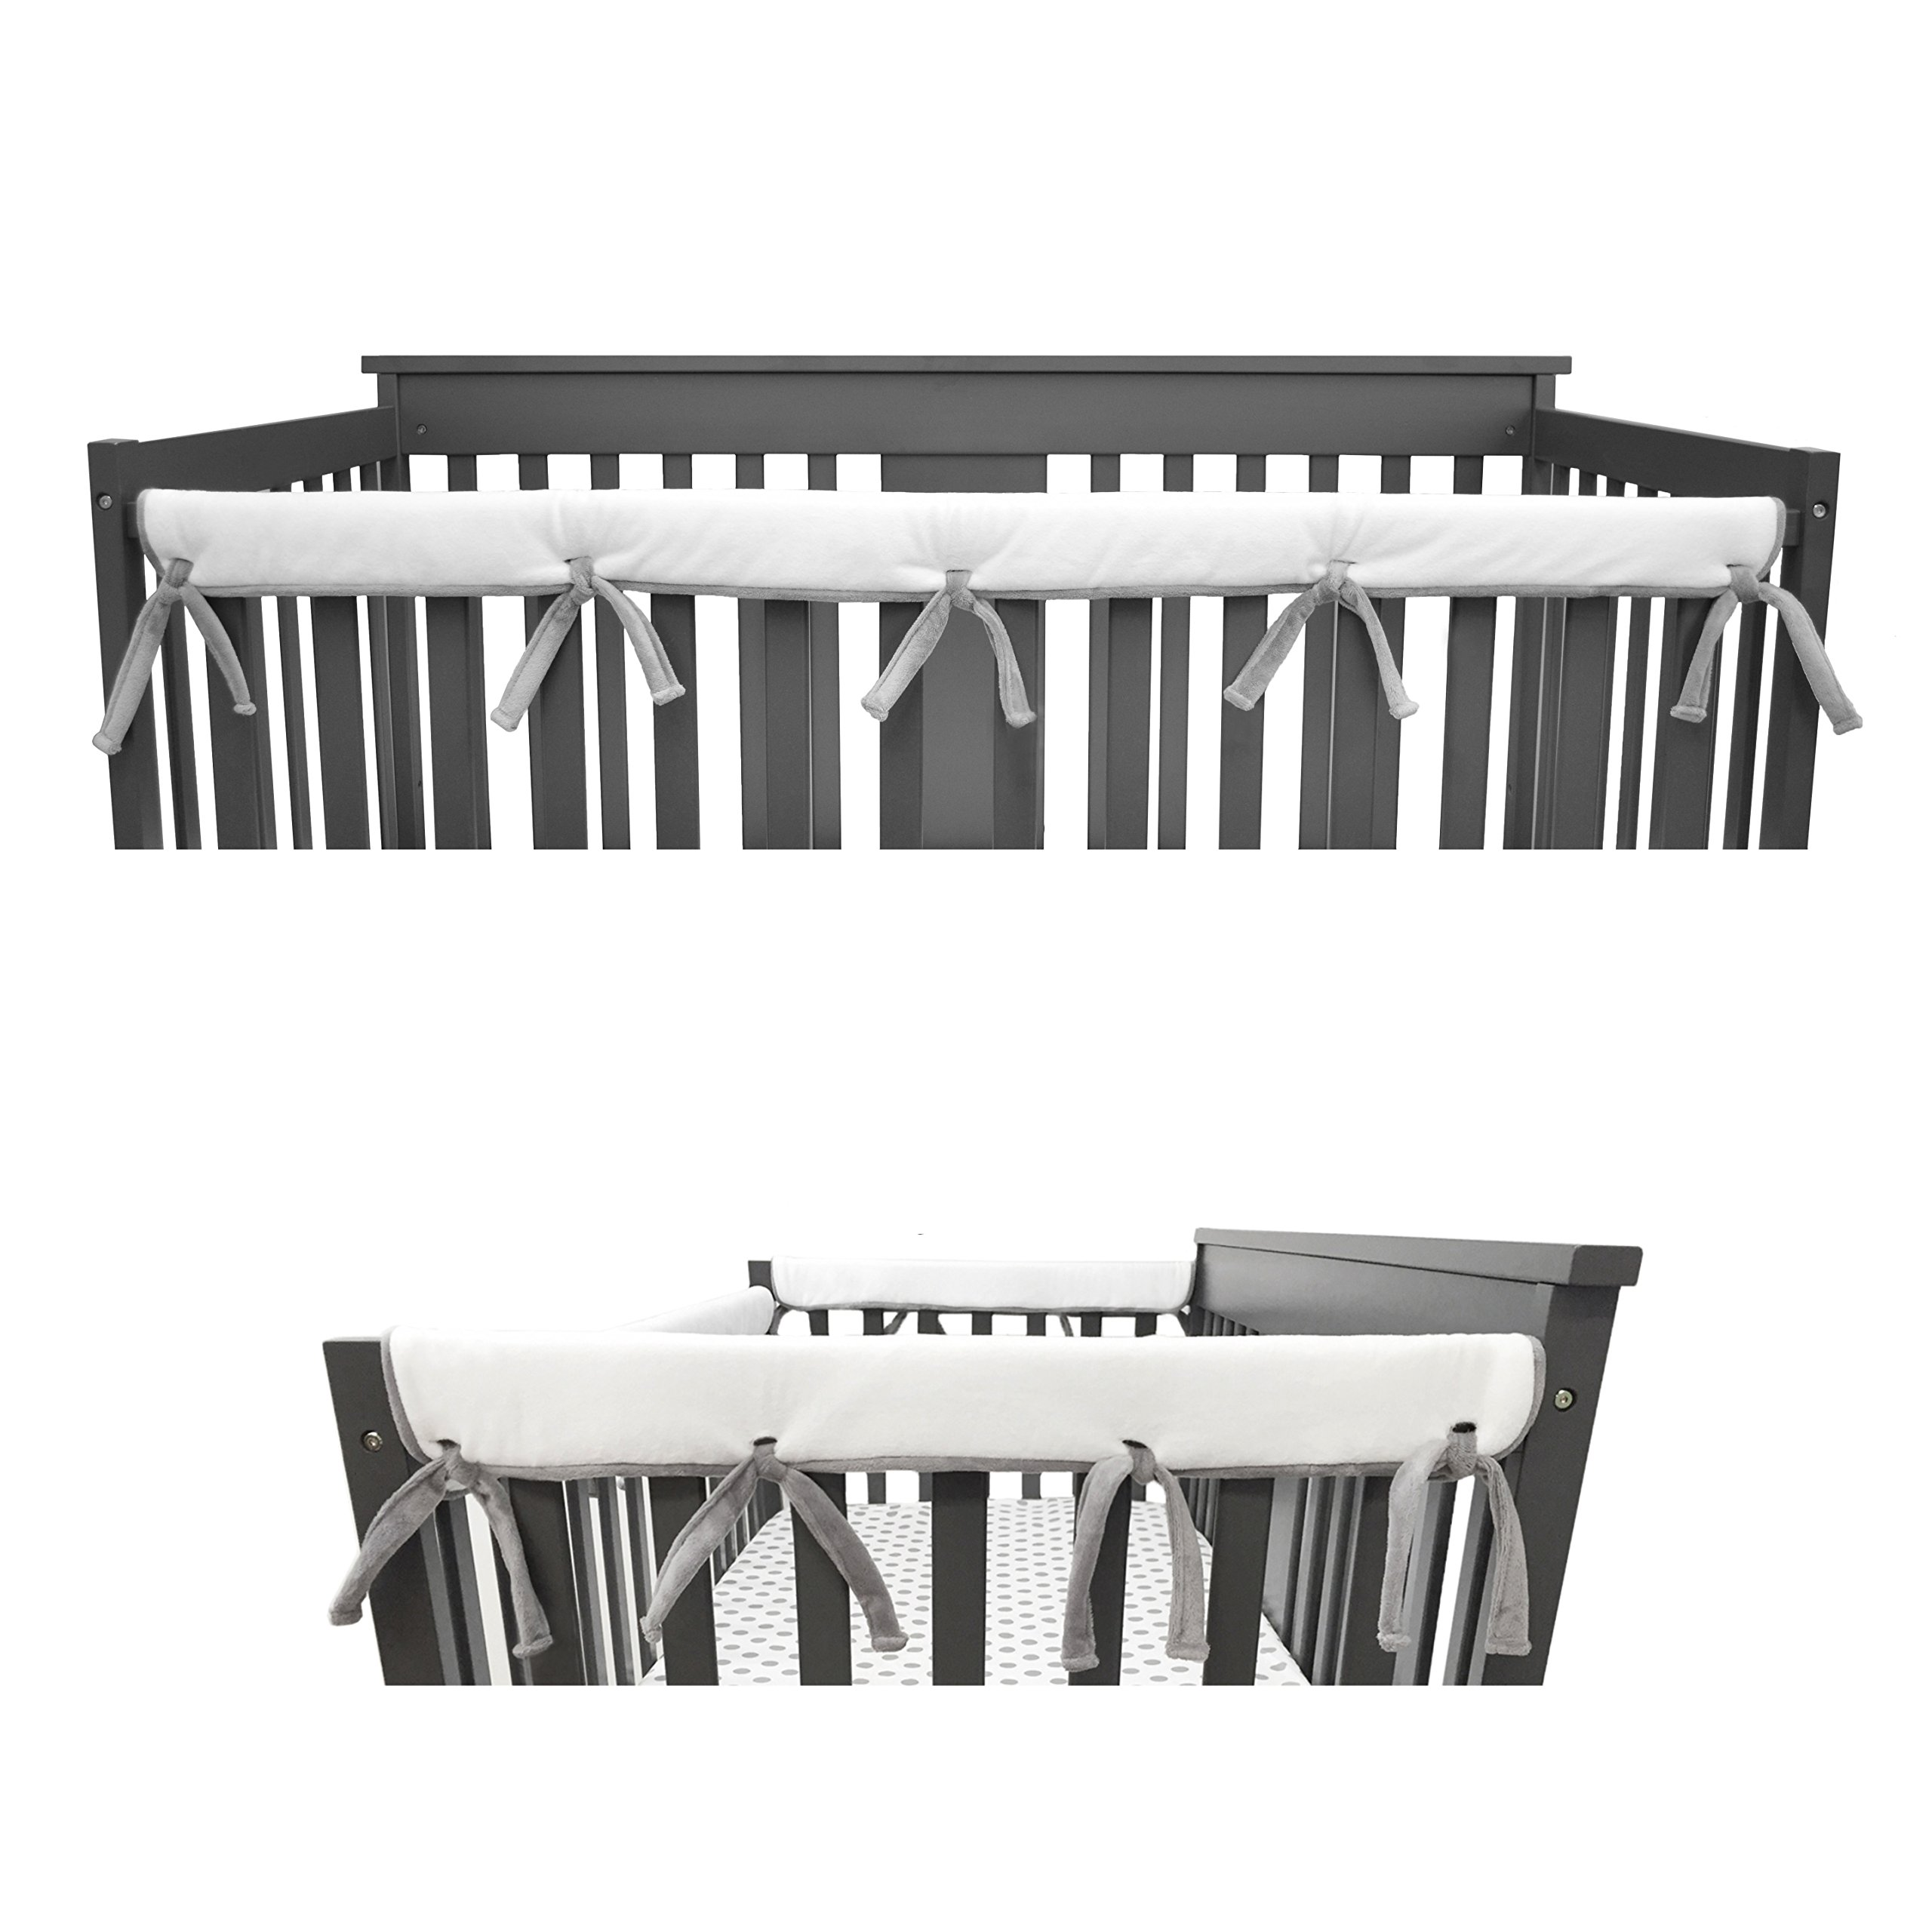 American Baby Company Heavenly Soft Narrow Reversible Crib Cover Set for 1 Long Rail & 2 Side Rails, Gray/White, Measuring up to 4'' Folded